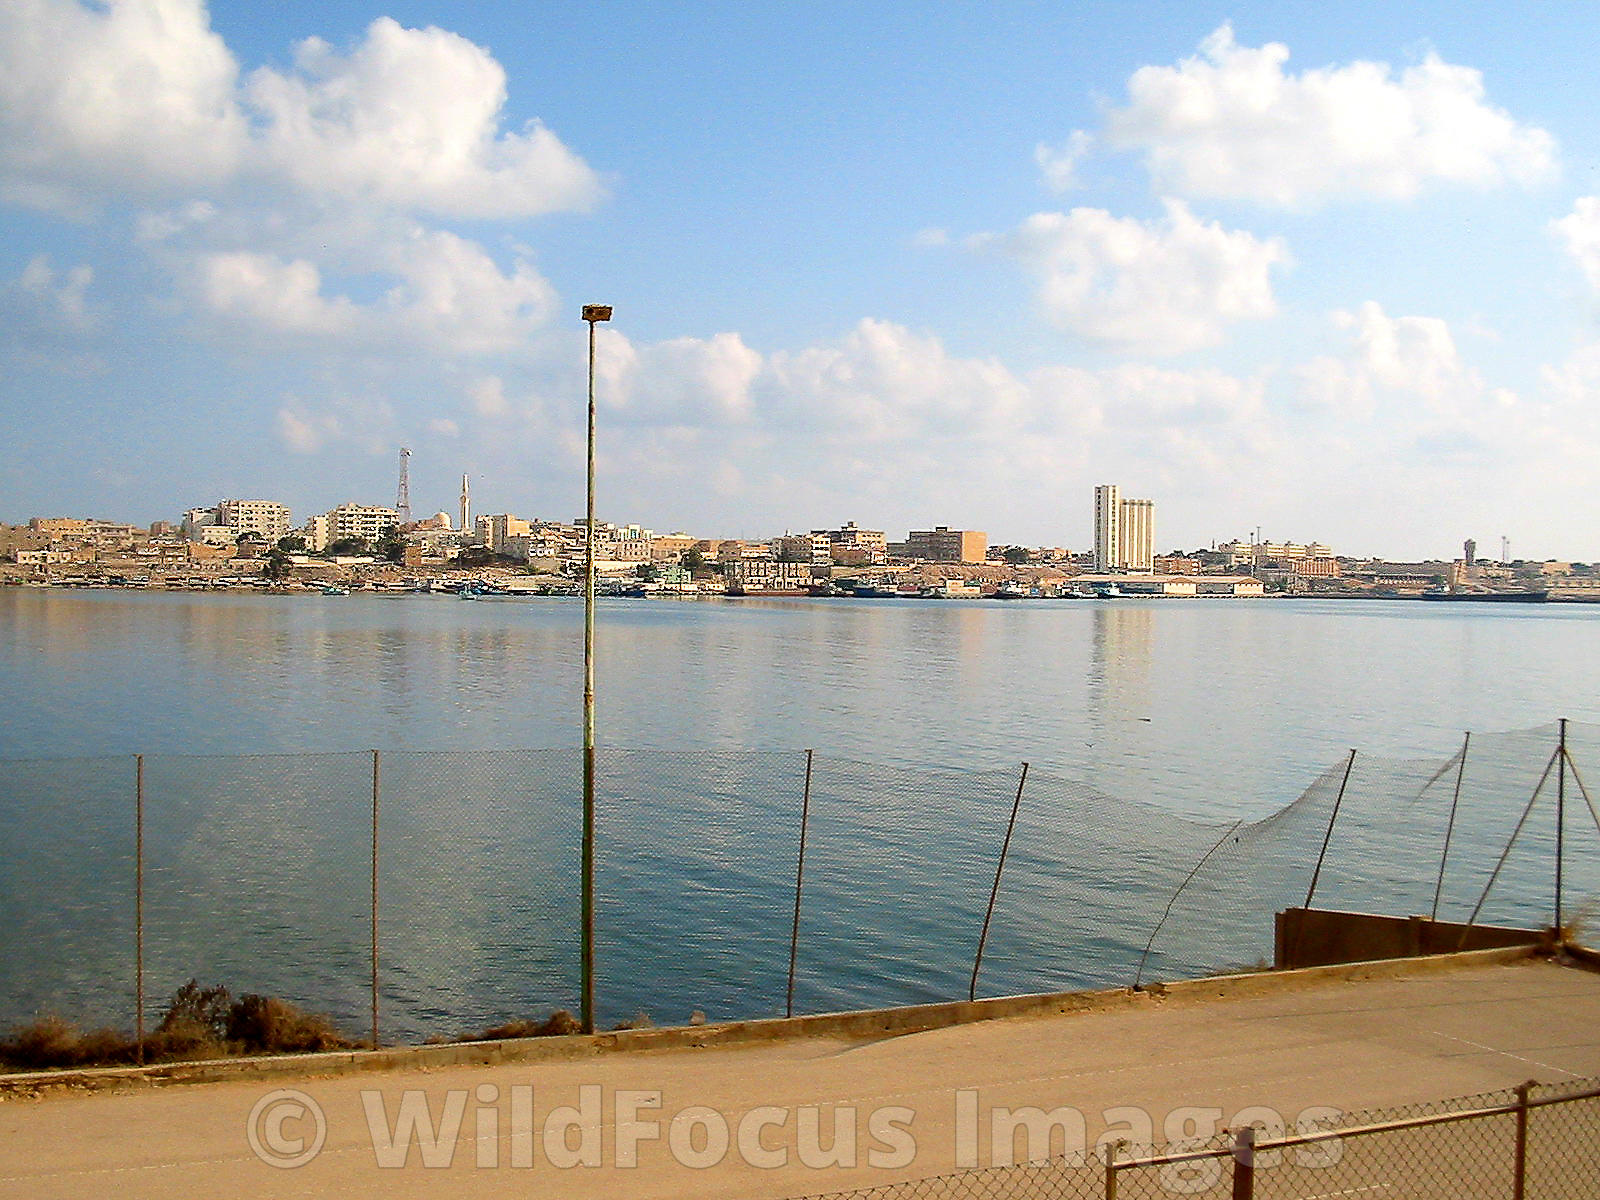 041025C-079-Tobruk-Harbour_Sunrise_from_Hotel